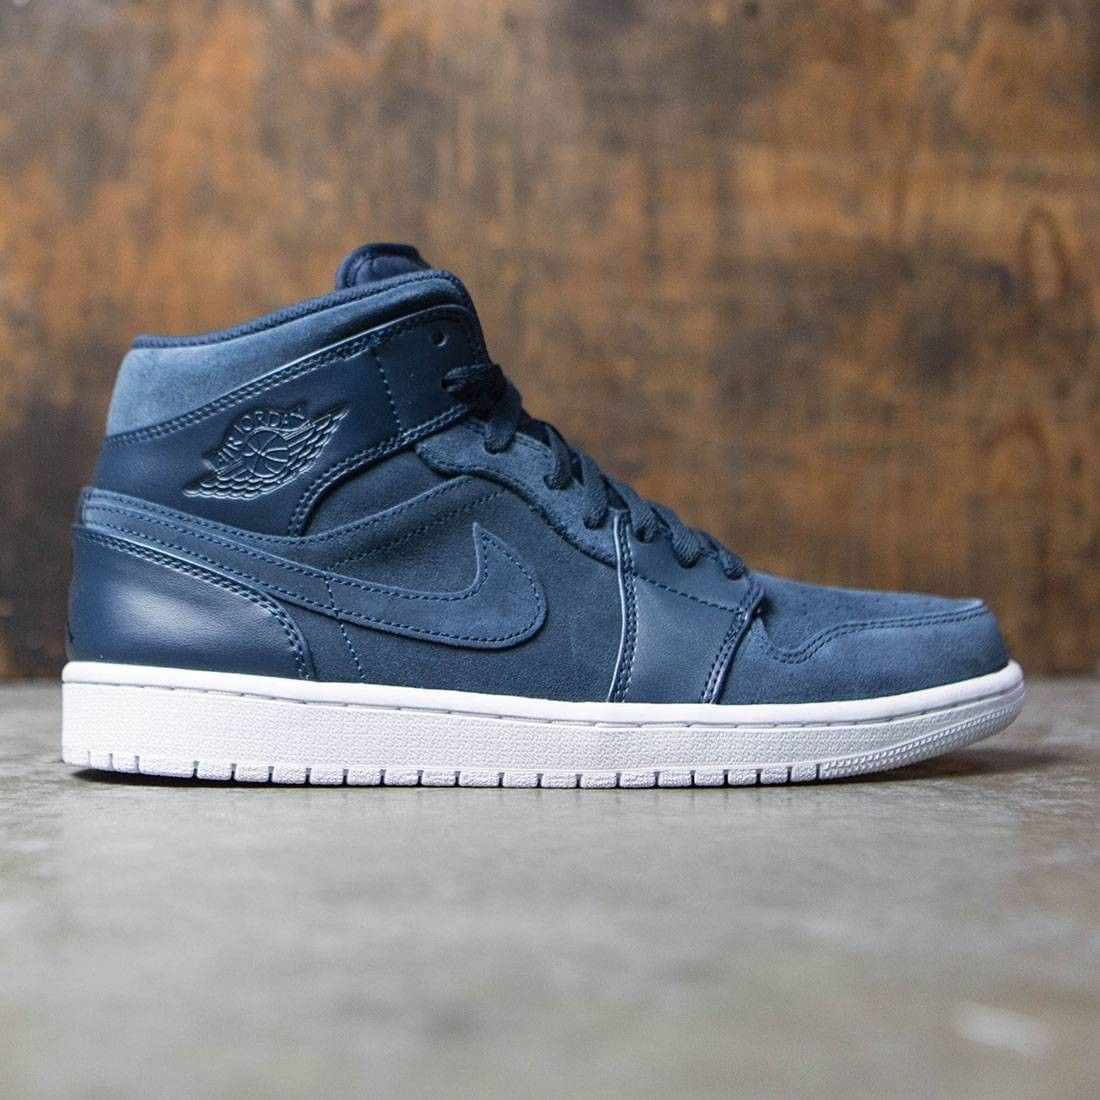 Shoes Outlet - Nike Air Jordan 1 Mid Armory Navy Mens Trainers